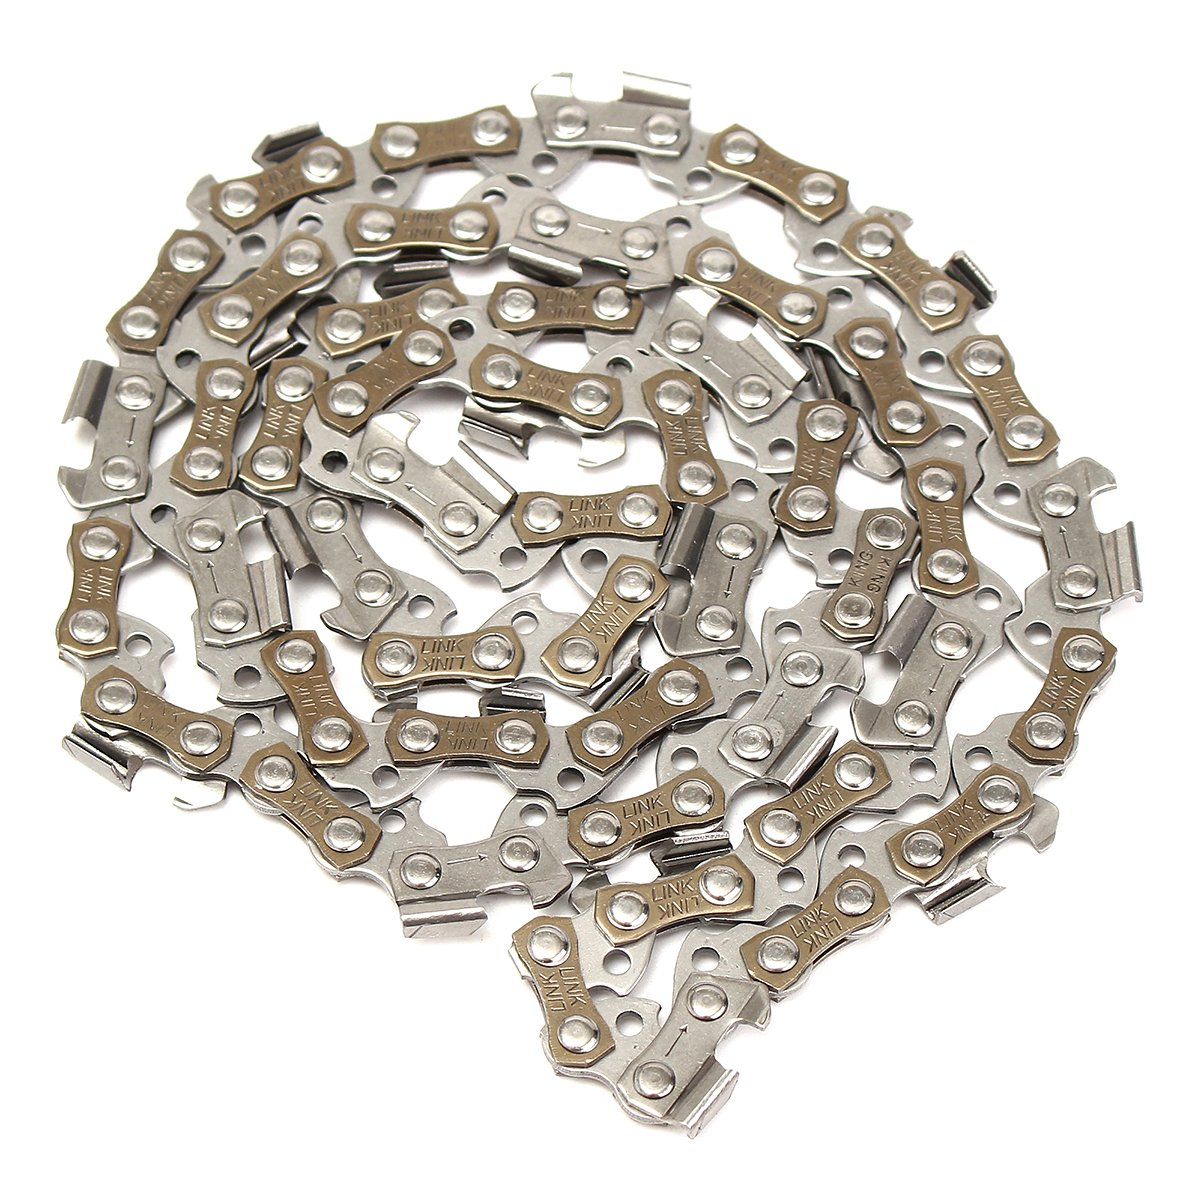 HITSAN 14inch Chain Saw Saw Chain Blade For Wen/Wagner 6014 6016 Lumberjack 050 Gauge 49DL One Piece